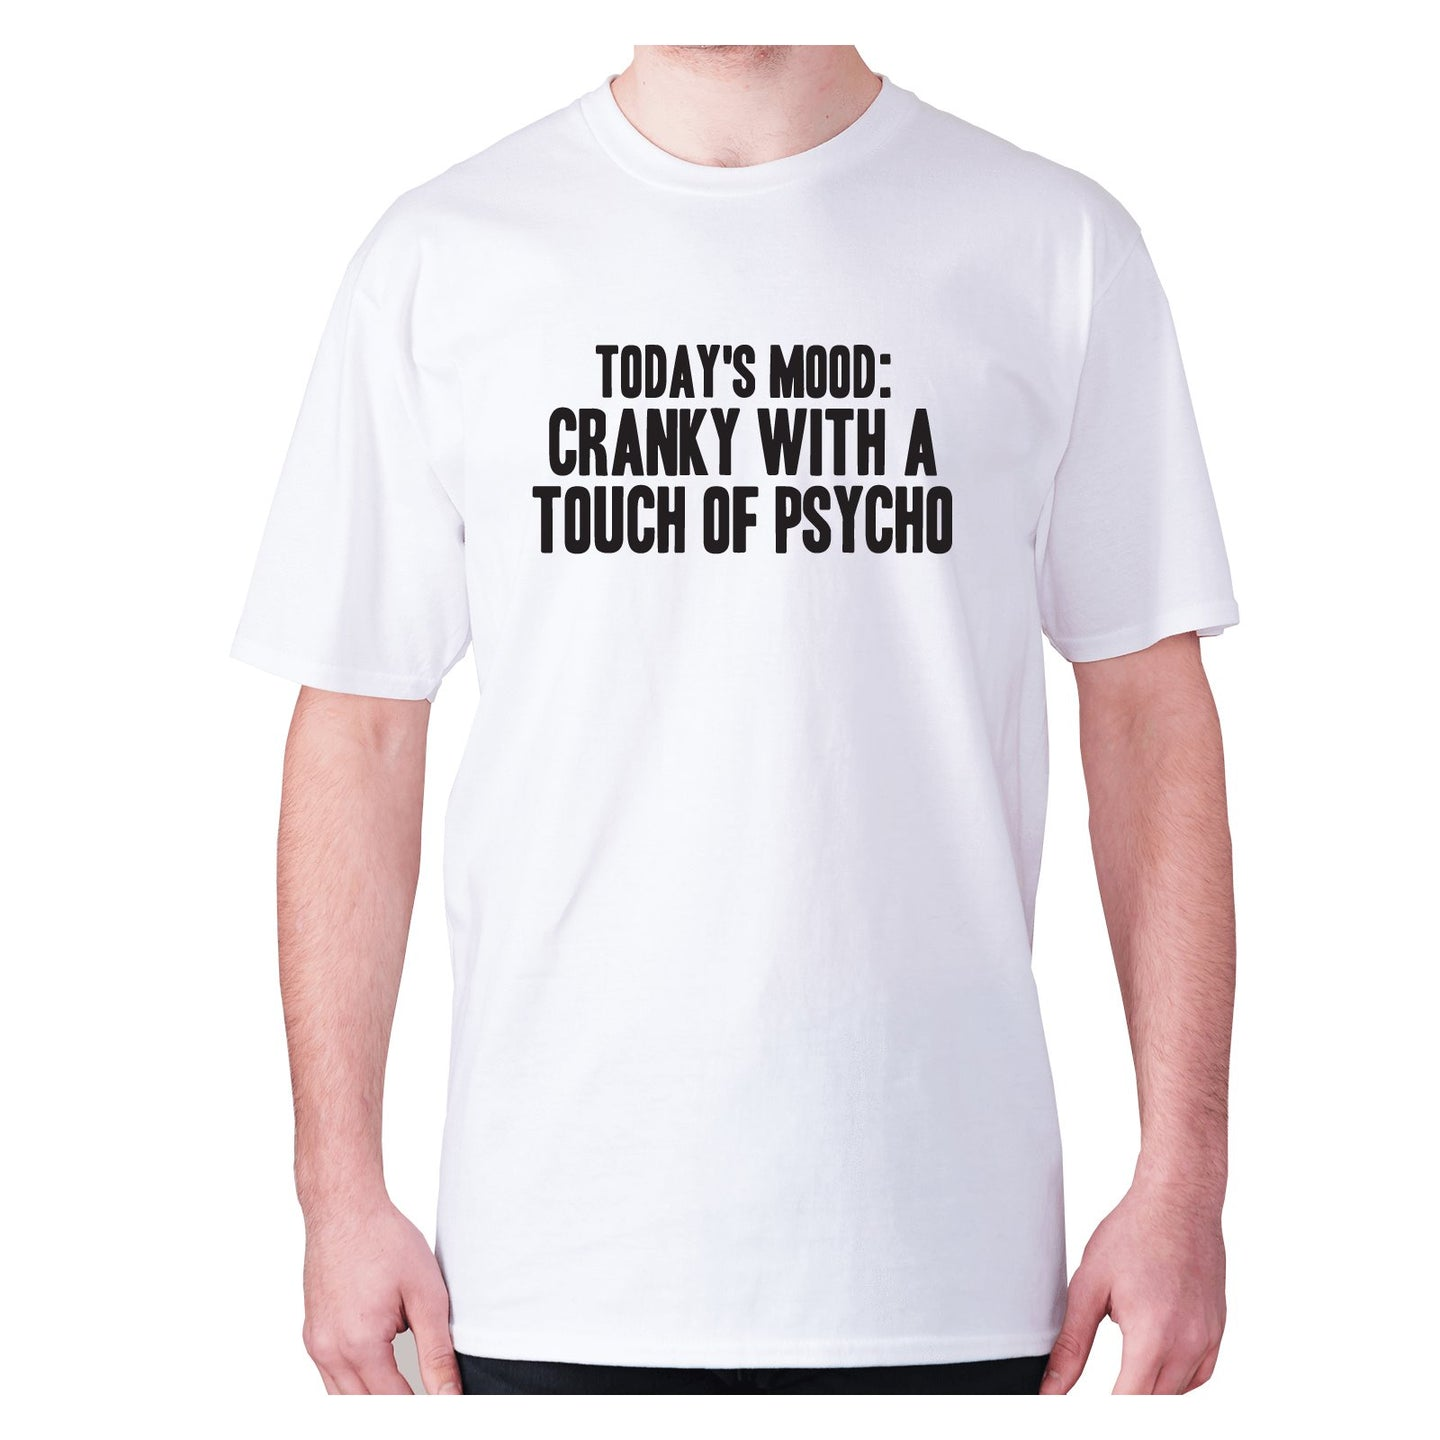 Today's mood cranky with a touch of psycho - men's premium t-shirt - White / S - Graphic Gear